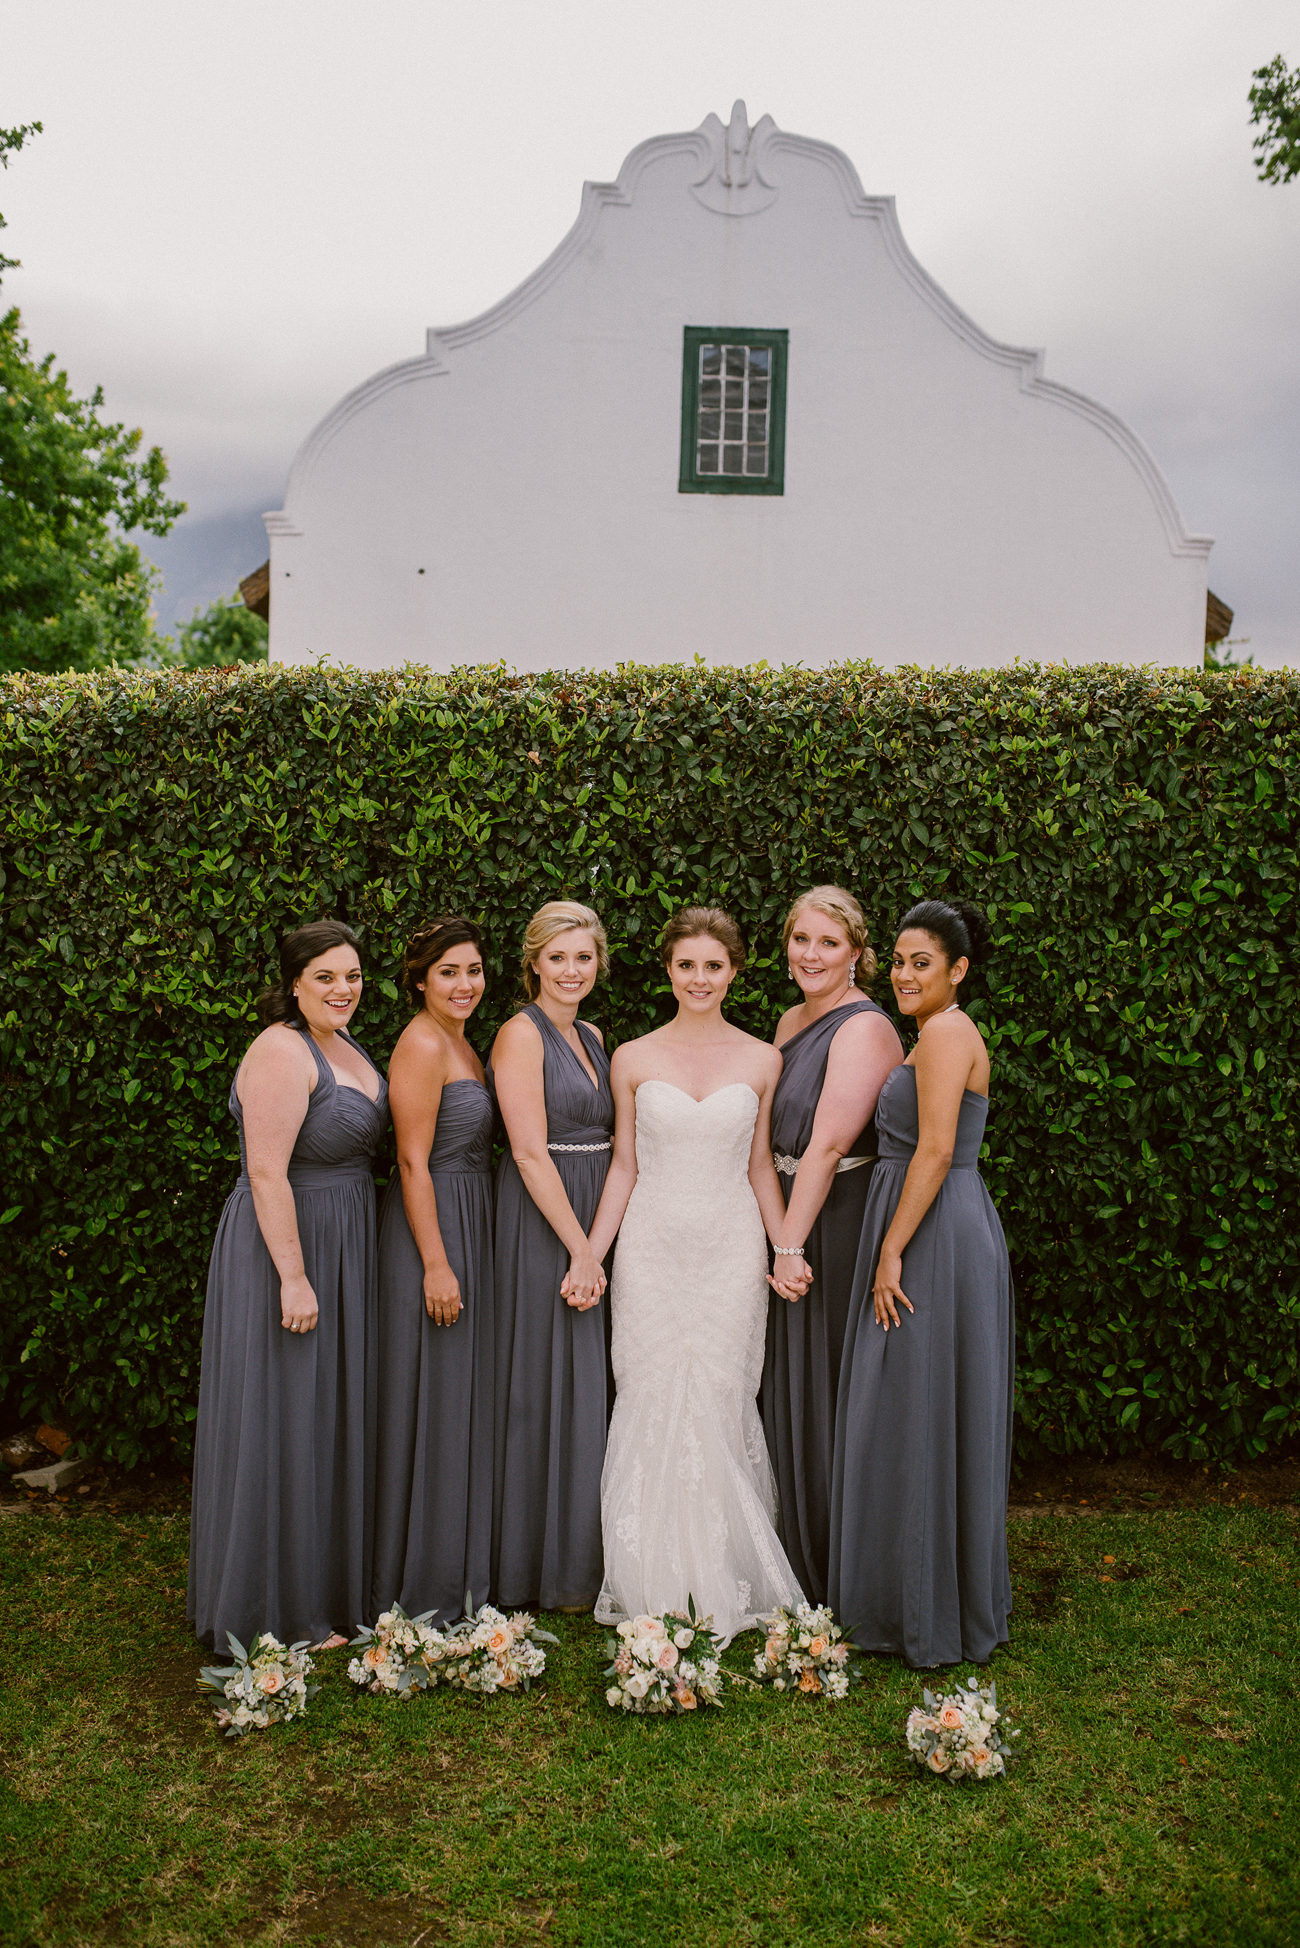 Bridesmaids in Grey | Image: Lad & Lass Photography